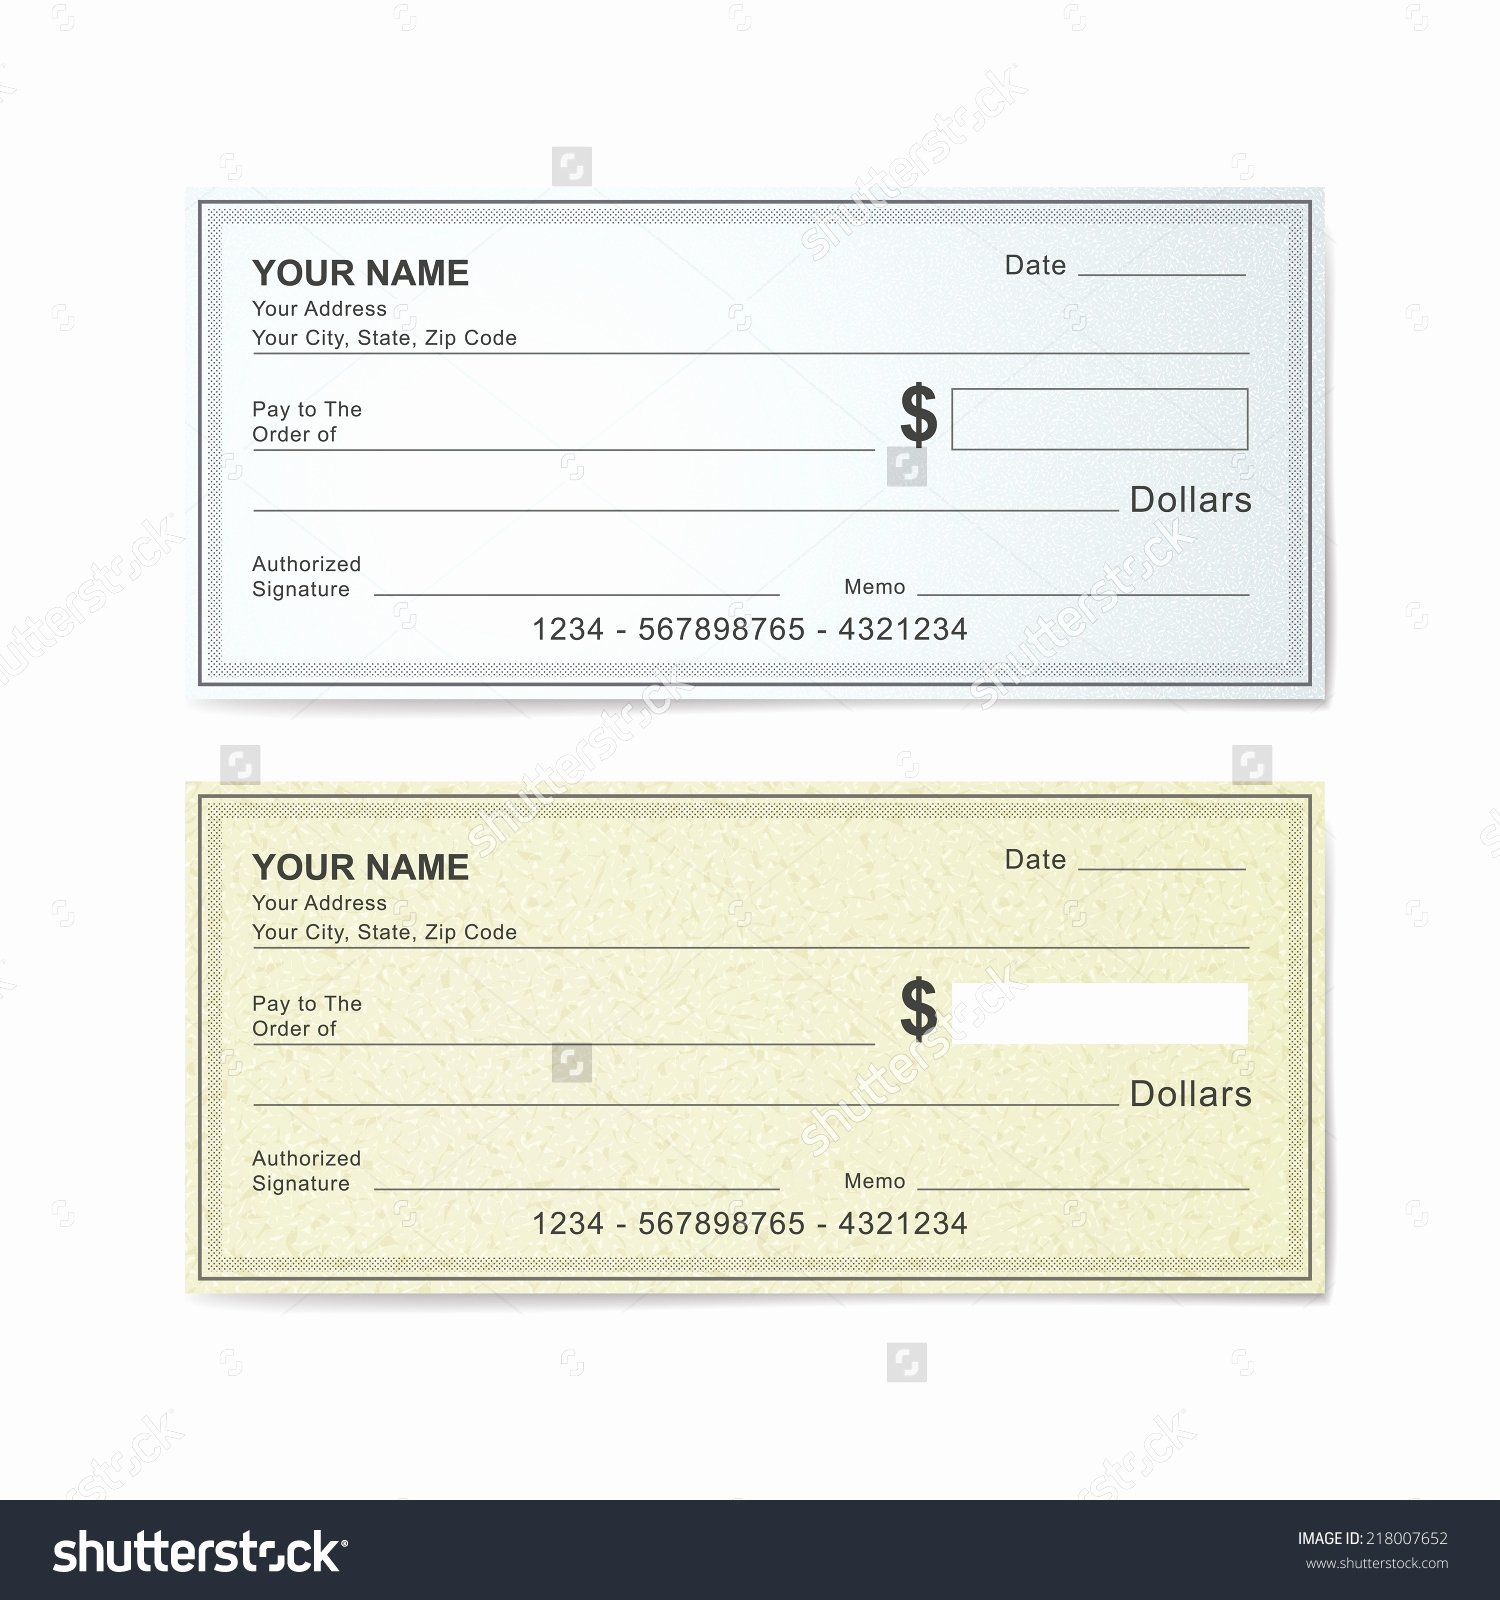 Fake Cashiers Check Template Inspirational Cashiers Check Template Beepmunk